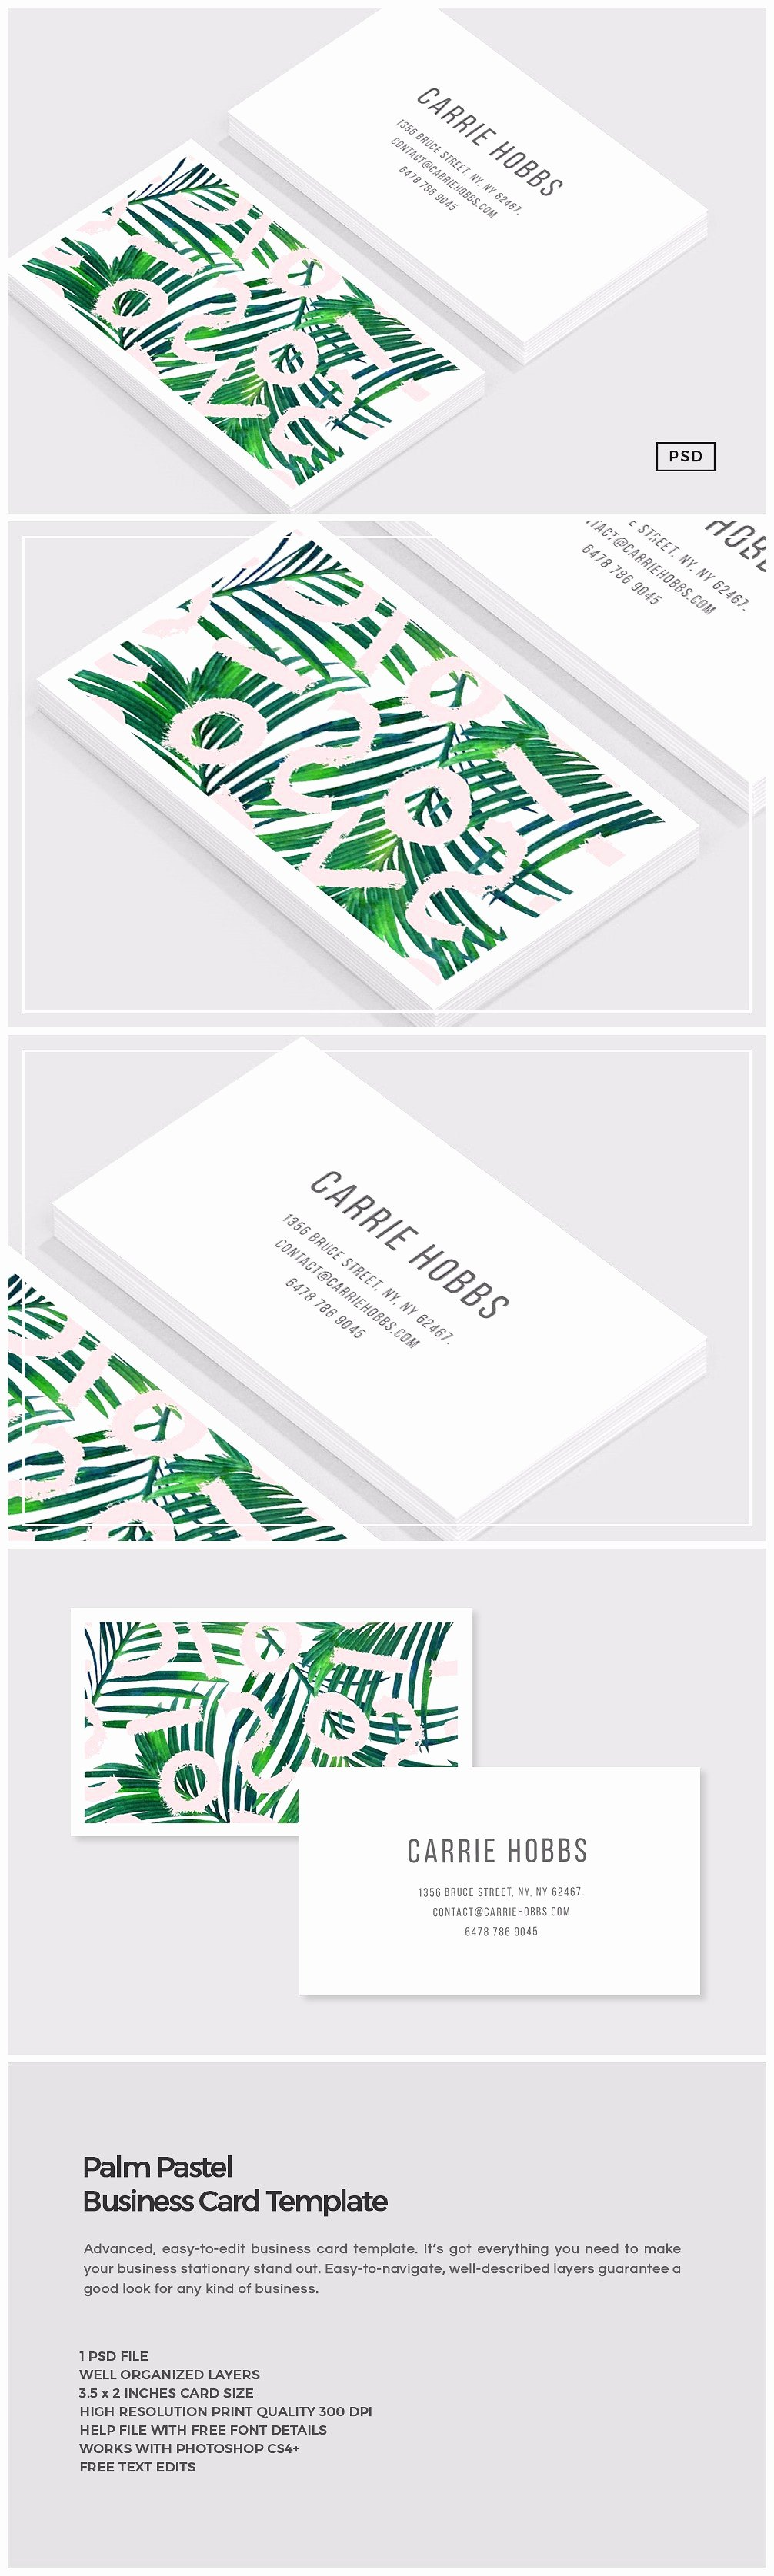 Business Card with Photo Template Beautiful Palm Pastel Business Card Template Business Card